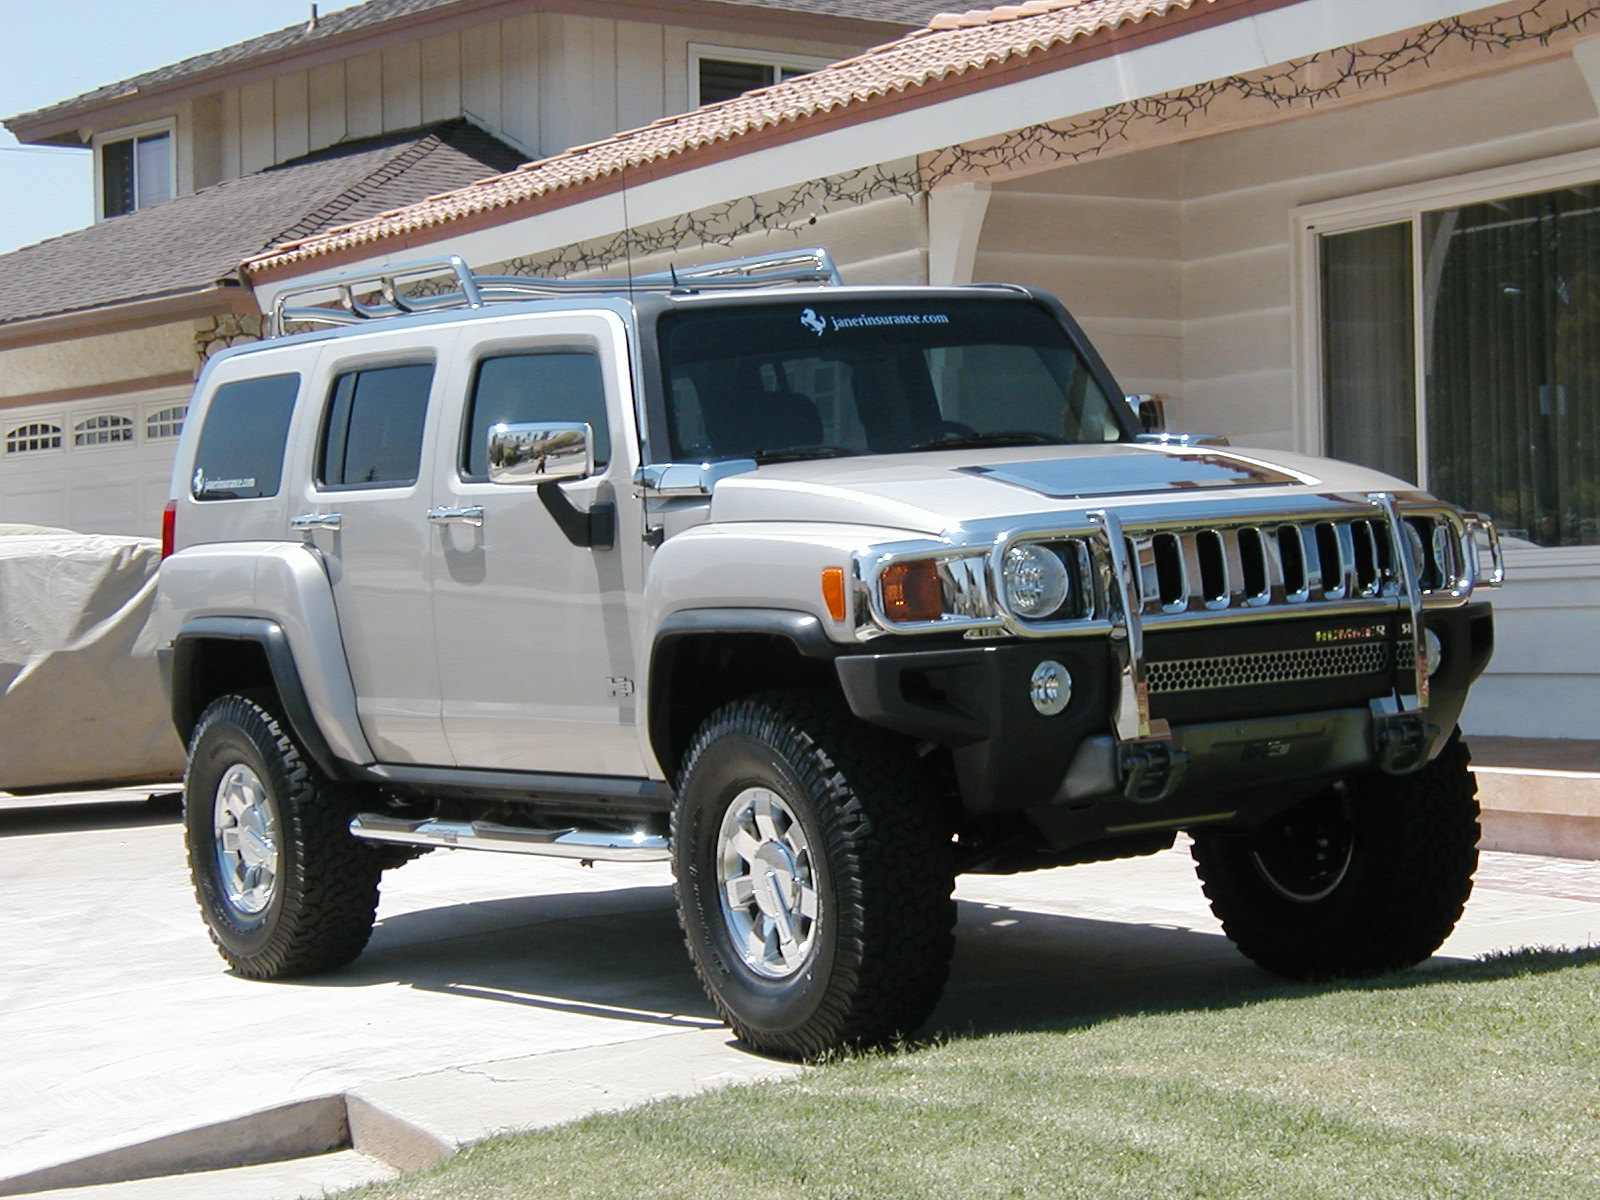 Picture of 2007 hummer h3 4 dr base exterior - Picture Of 2007 Hummer H3 4 Dr